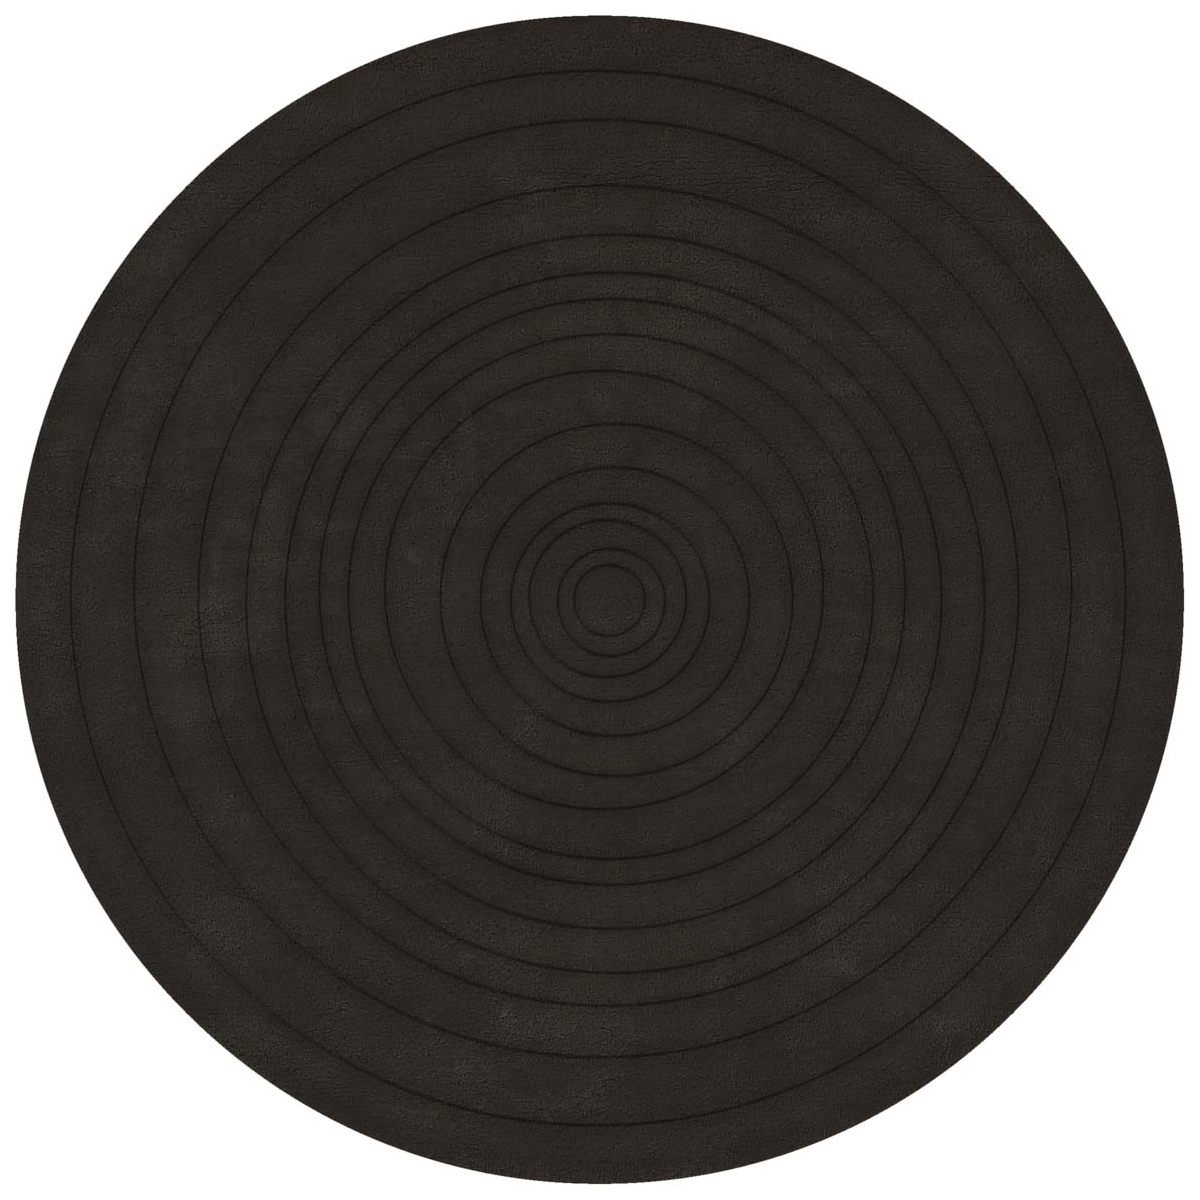 Tapis Rond Fly Tapis Rond Coco Good Tapis Rond Super Doux Chenille En